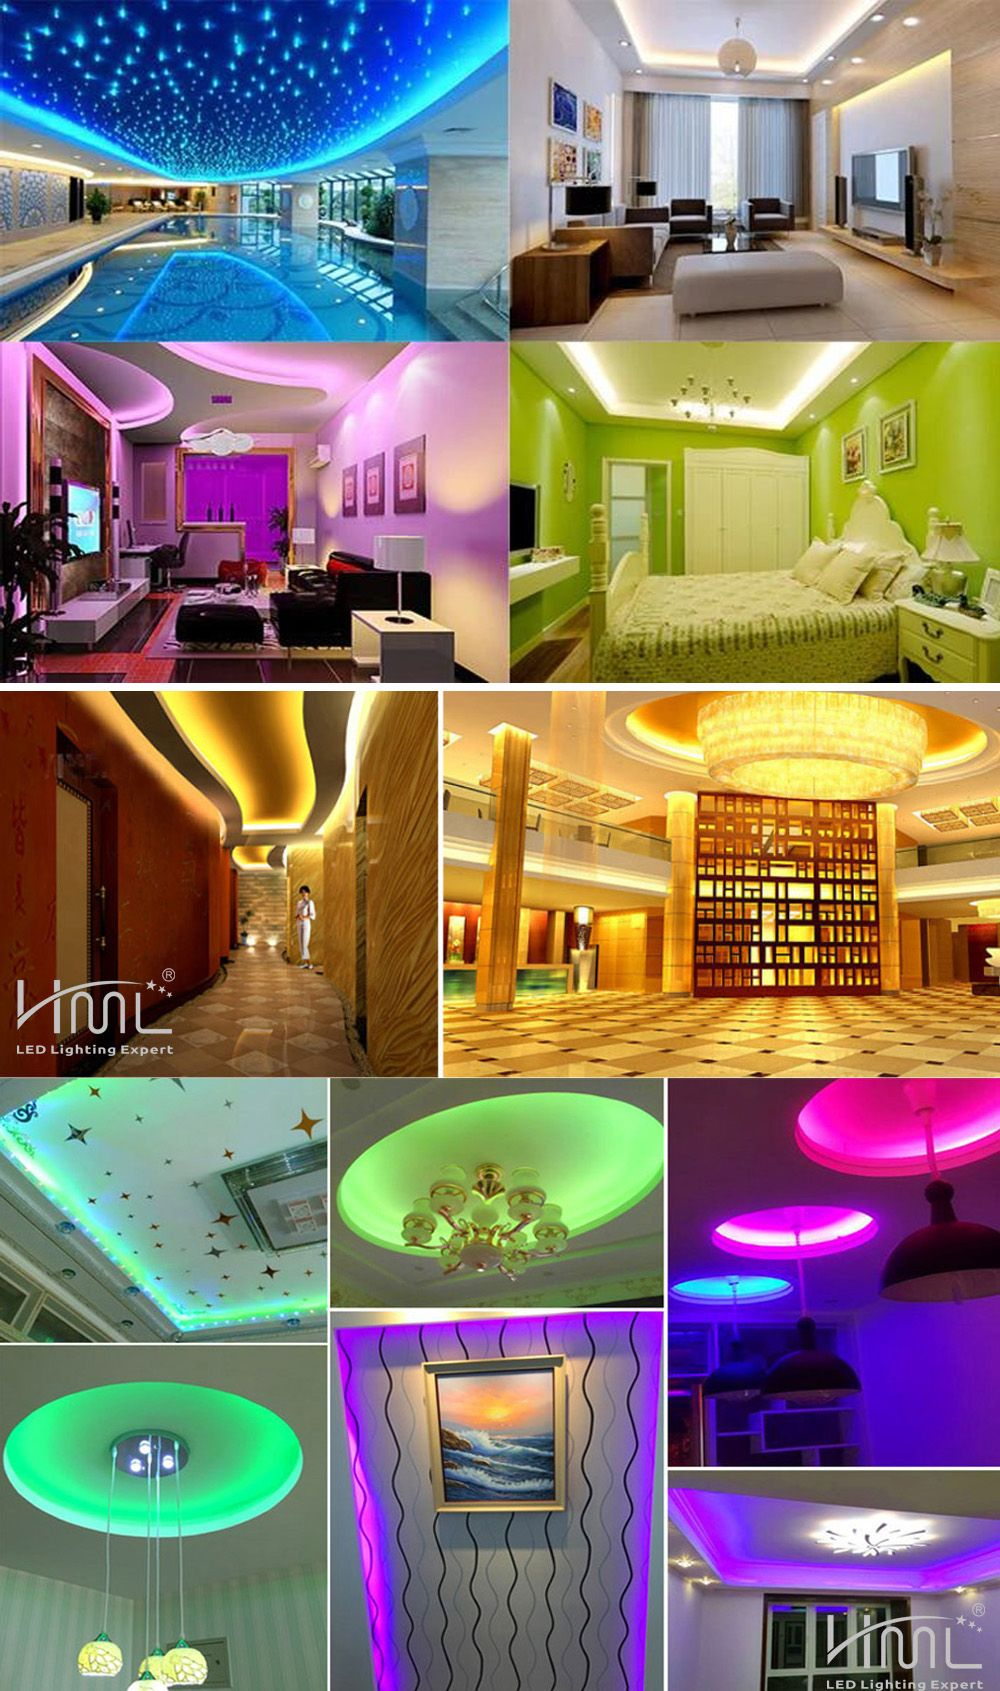 HML LED Strip Light 5M 24W RGB SMD2835 300 LEDs - with IR 20 Keys Music Remote Control and US Adapter